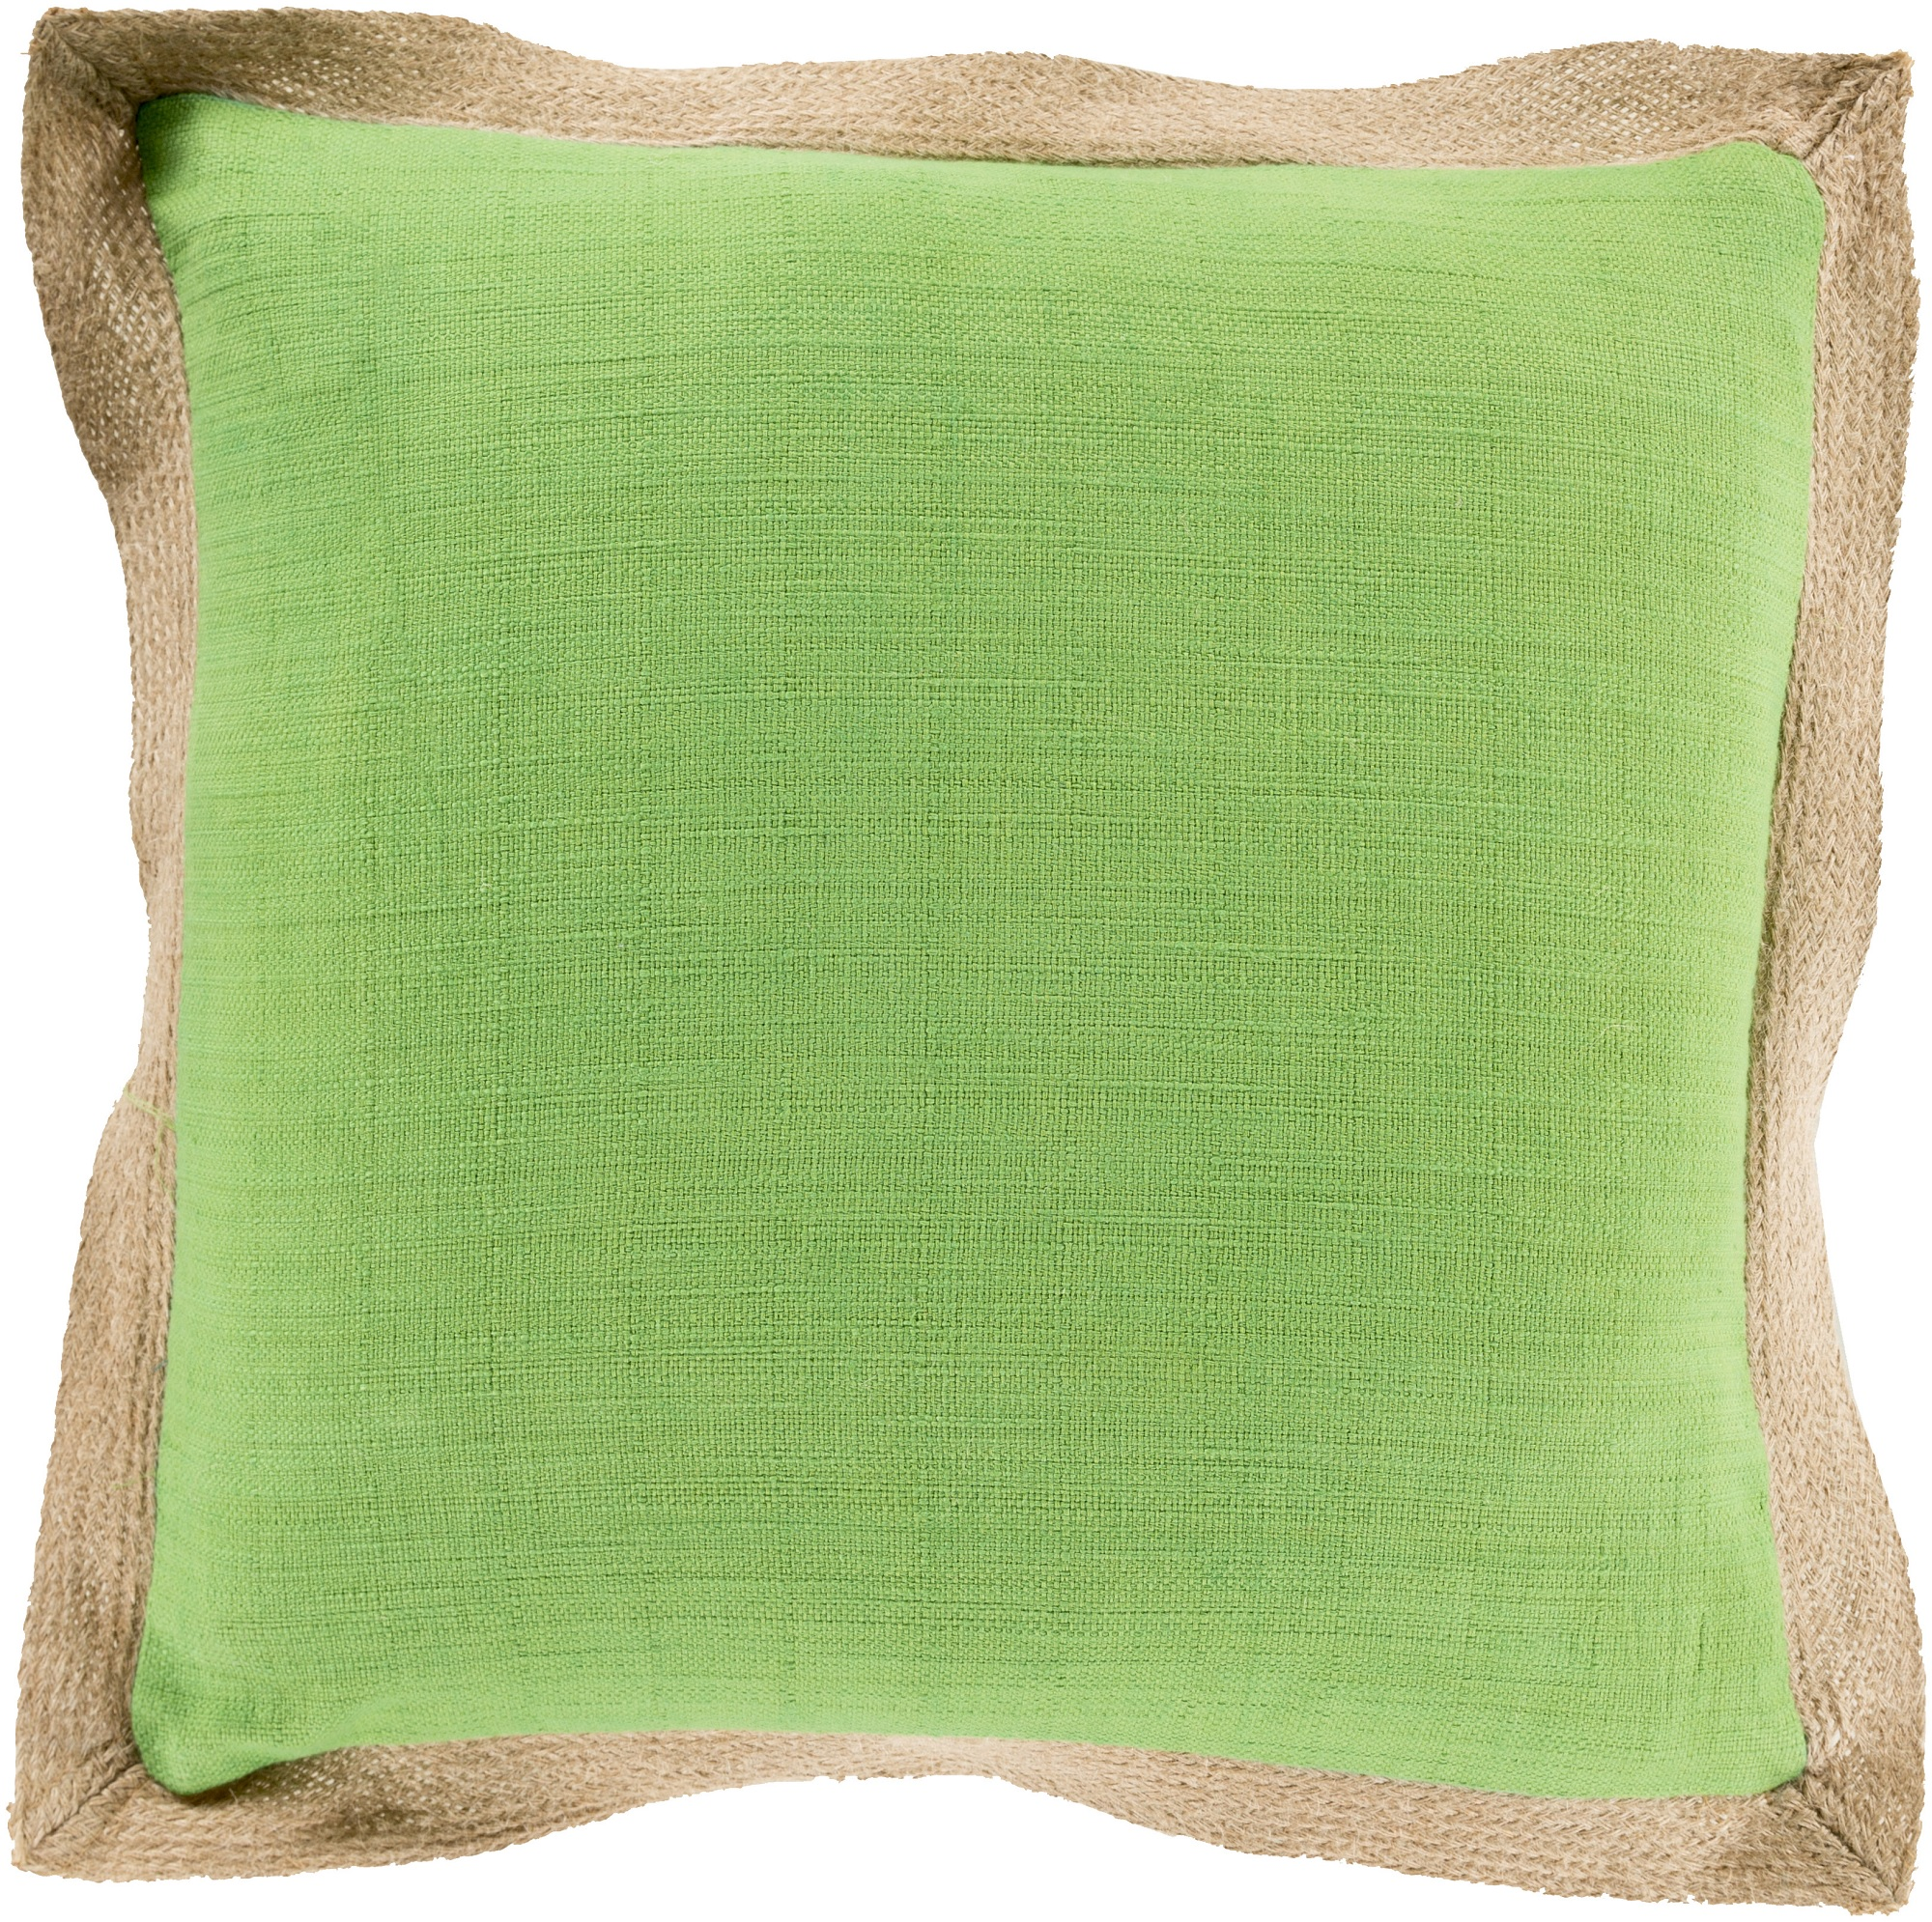 "18"" Altn Lif Apple Green and Light Taupe Decorative Throw Pillow"